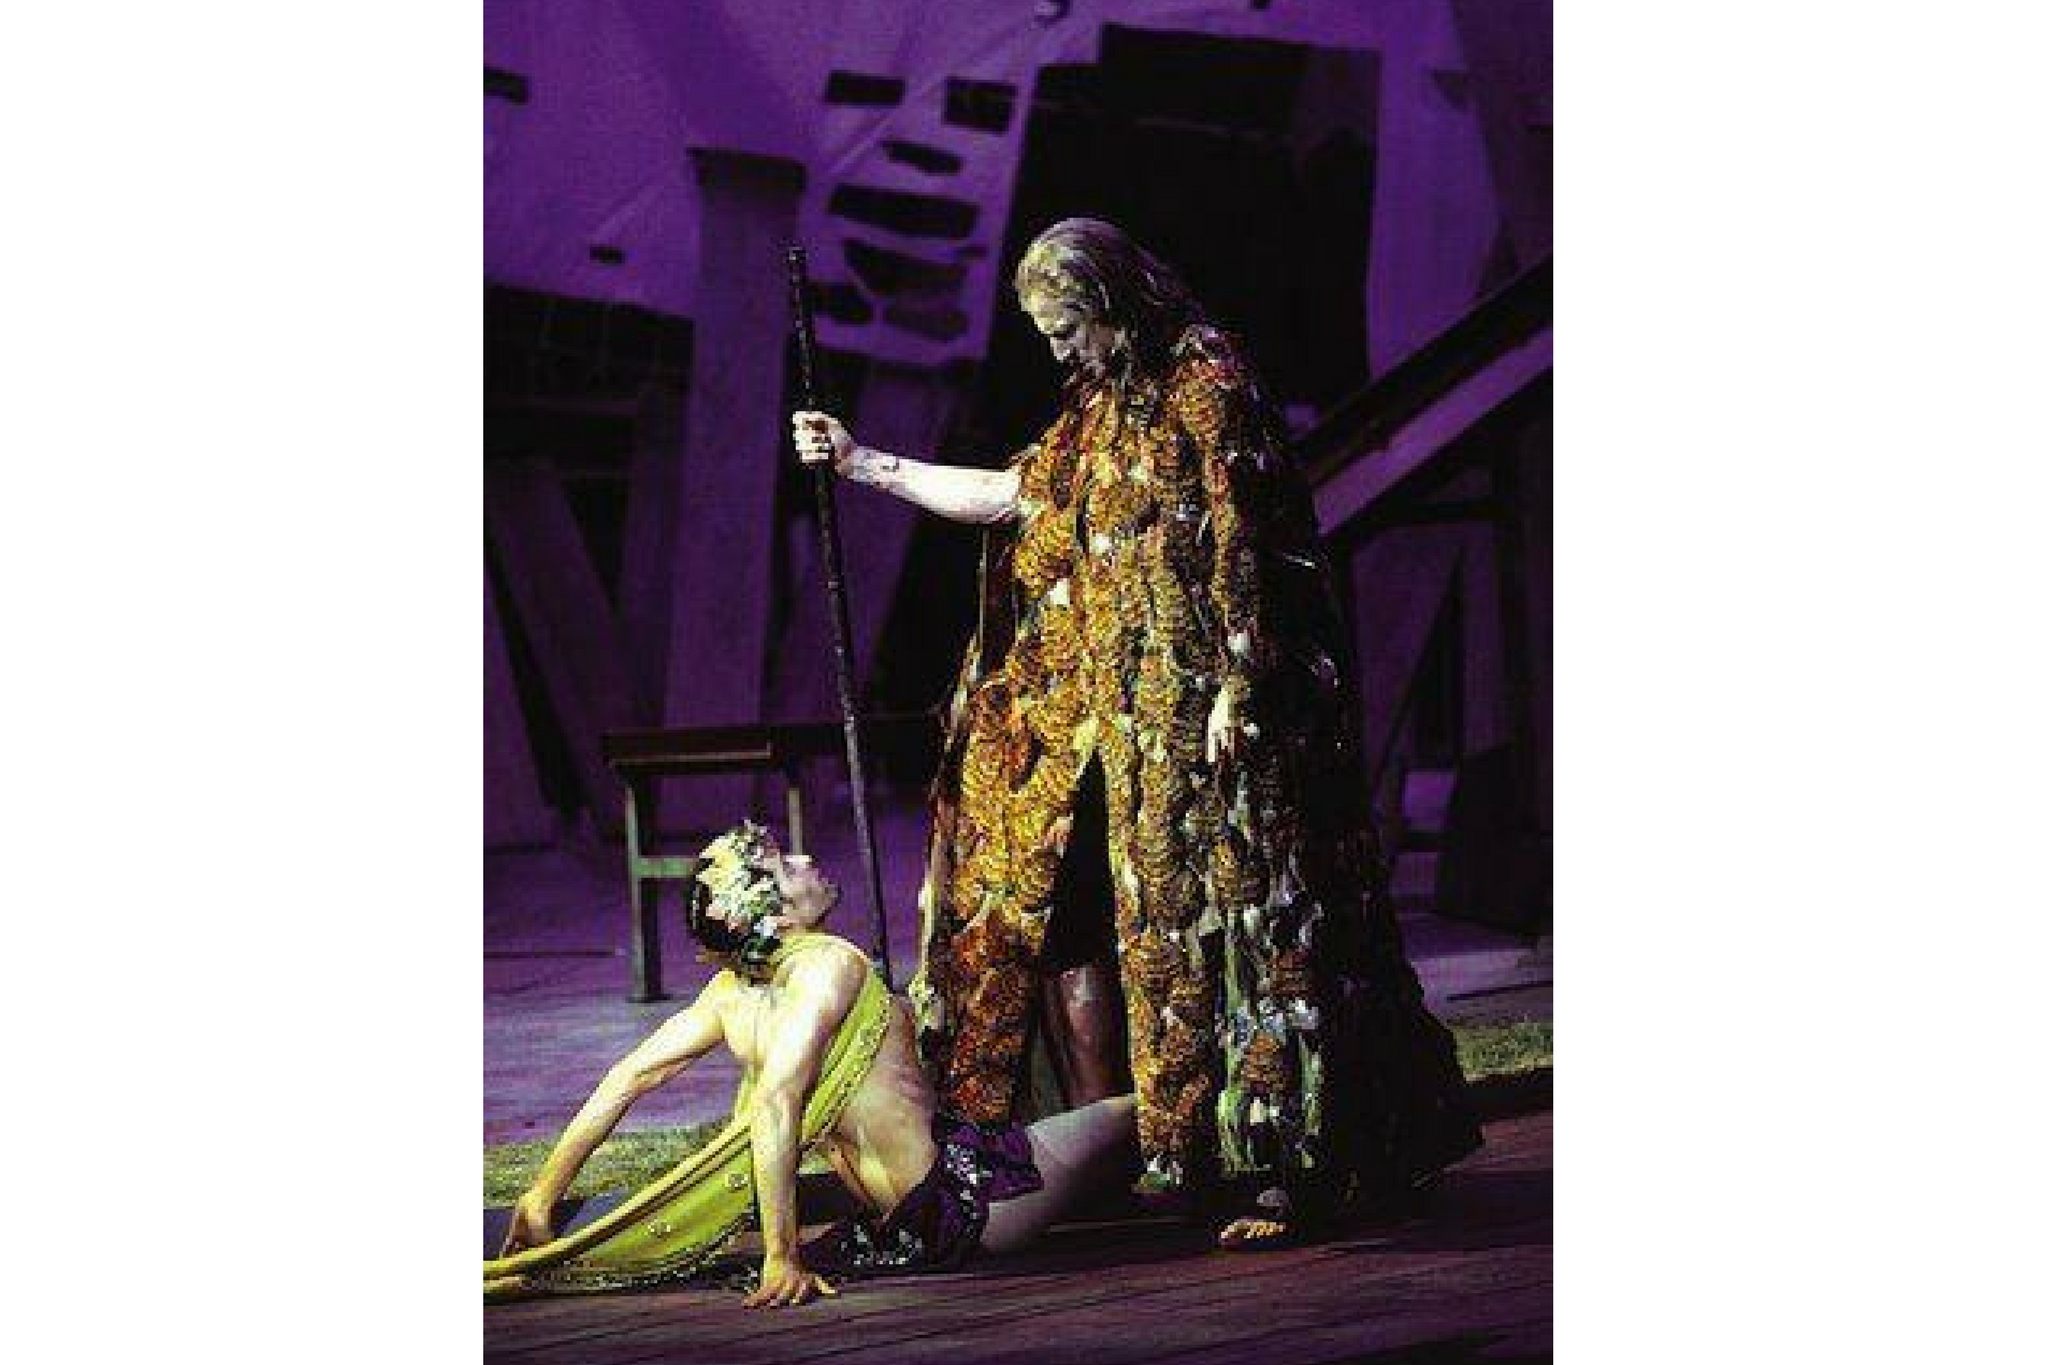 Antonio Suarez (Ariel) and Will Lyman (Prospero) in The Tempest, Shakespeare on the Common 2000